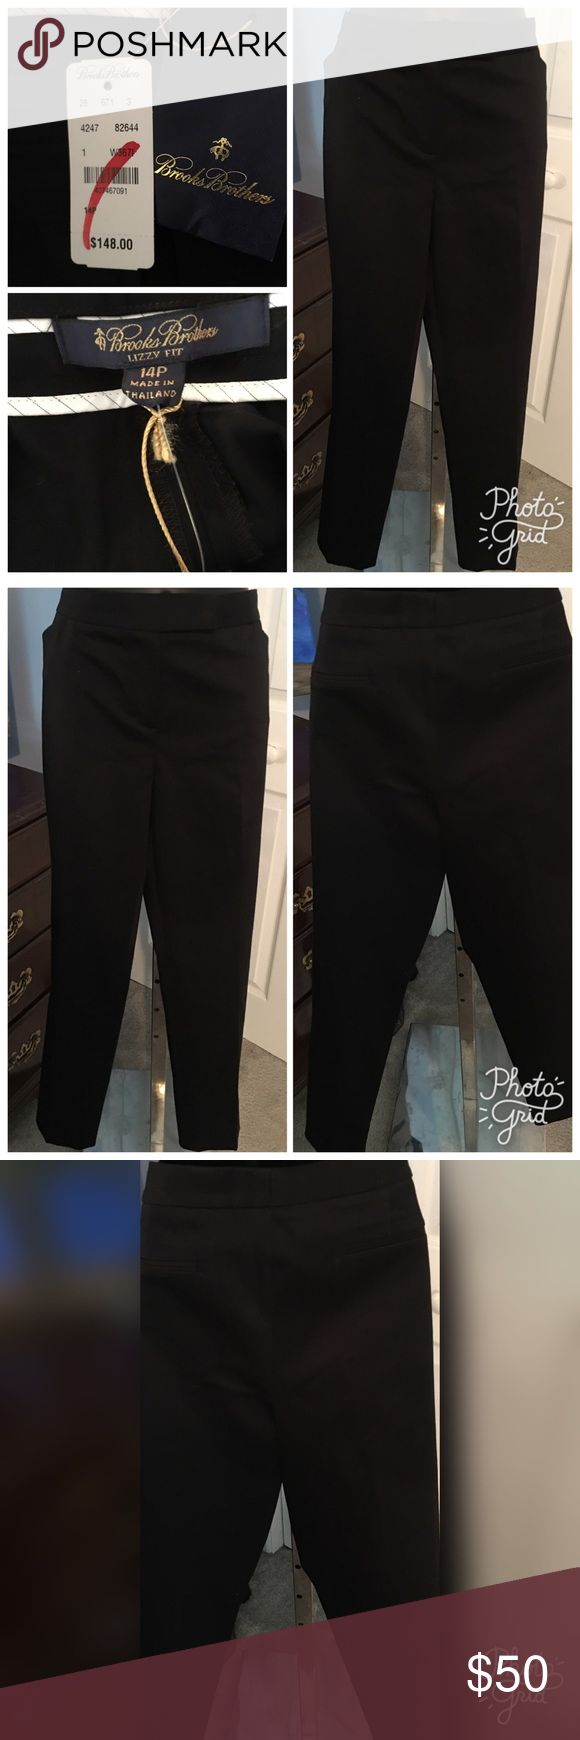 "Brooks Brothers Petite Pants Brooks Brothers Lizzy Fit Petite black pants. Measures 38"" in the waist with a 27"" inseam. Brooks Brothers Pants Ankle & Cropped"